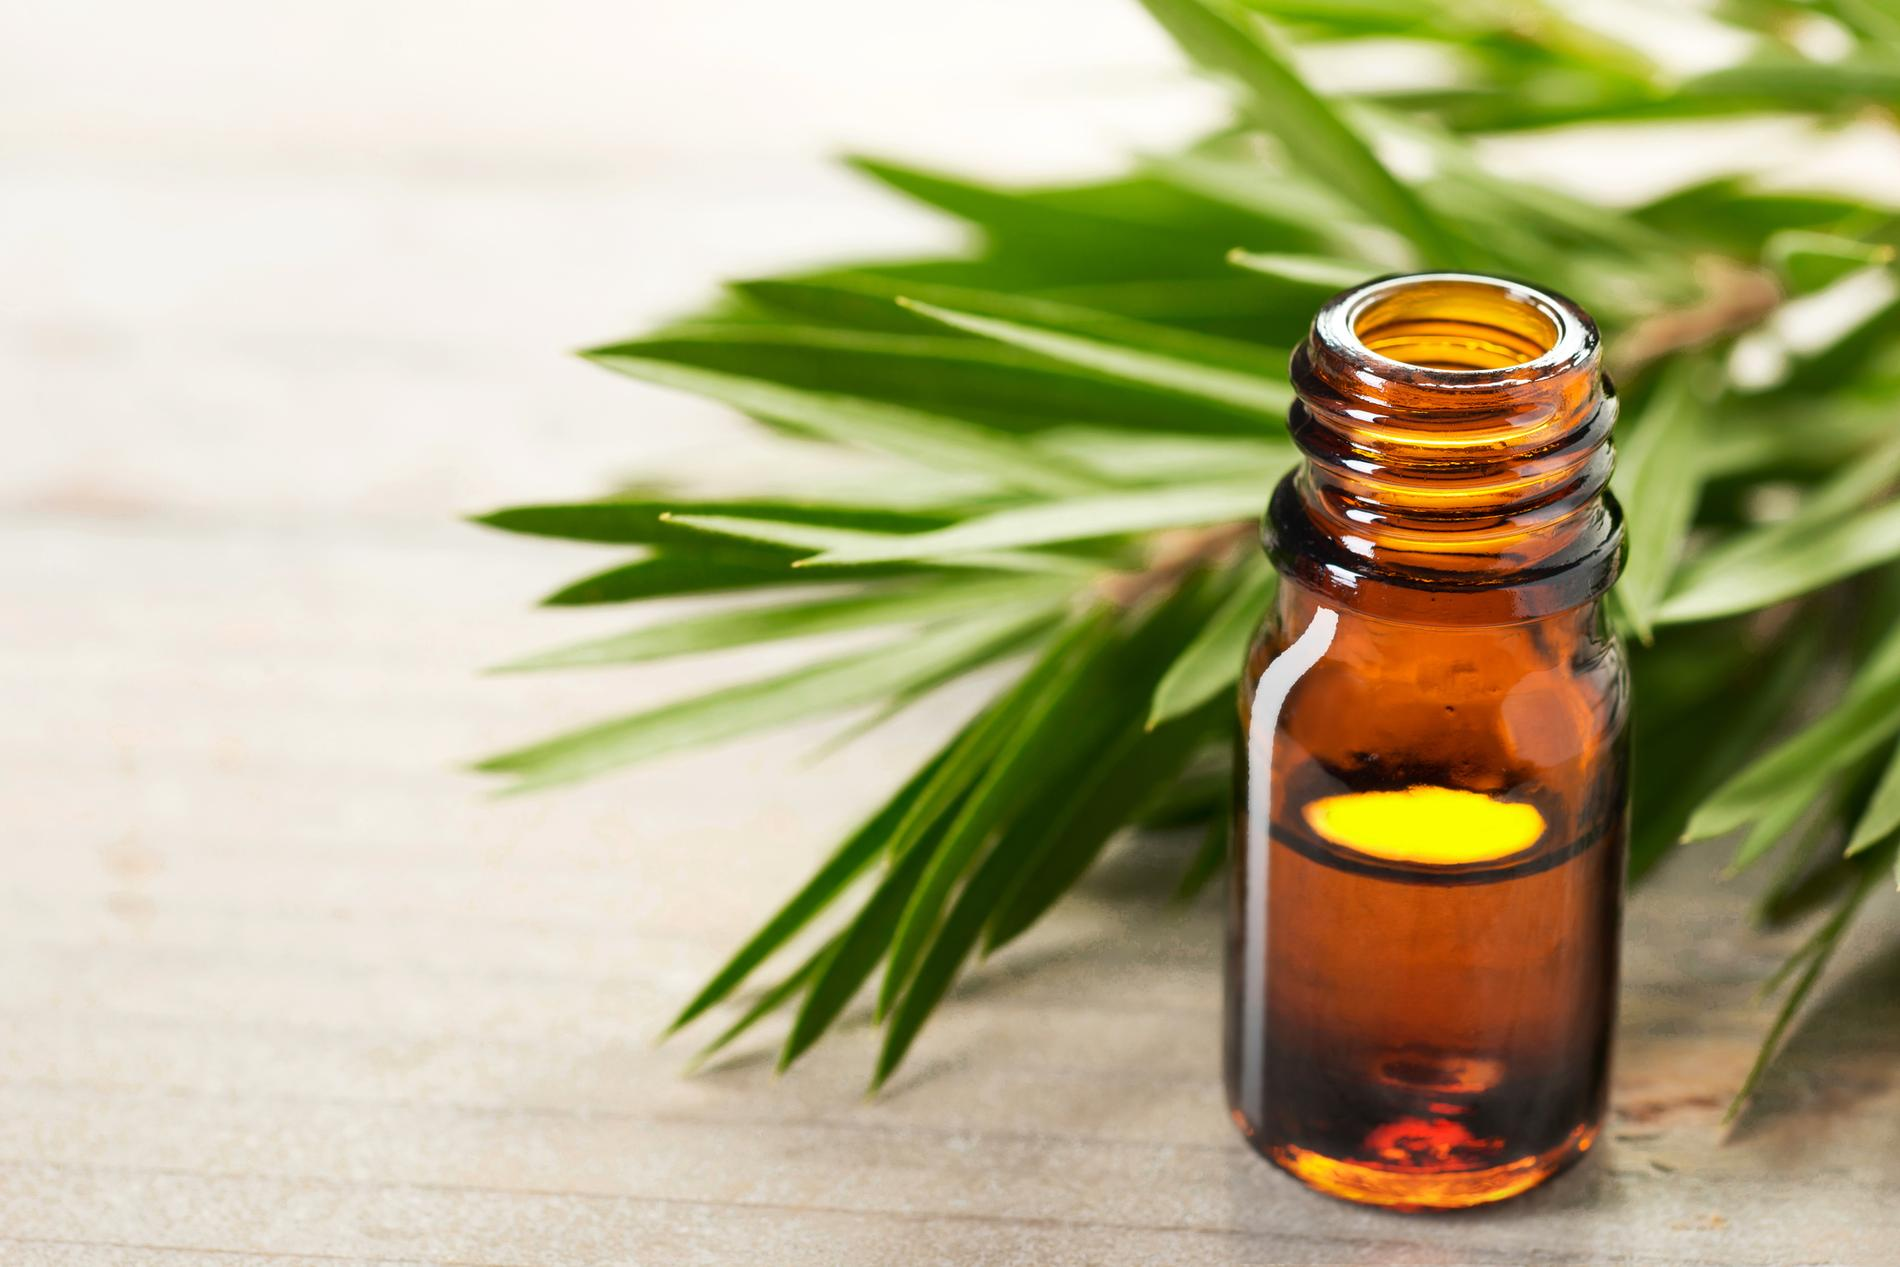 Acne, oily skin, cold sore ... How to use tea tree essential oil - Madame Figaro